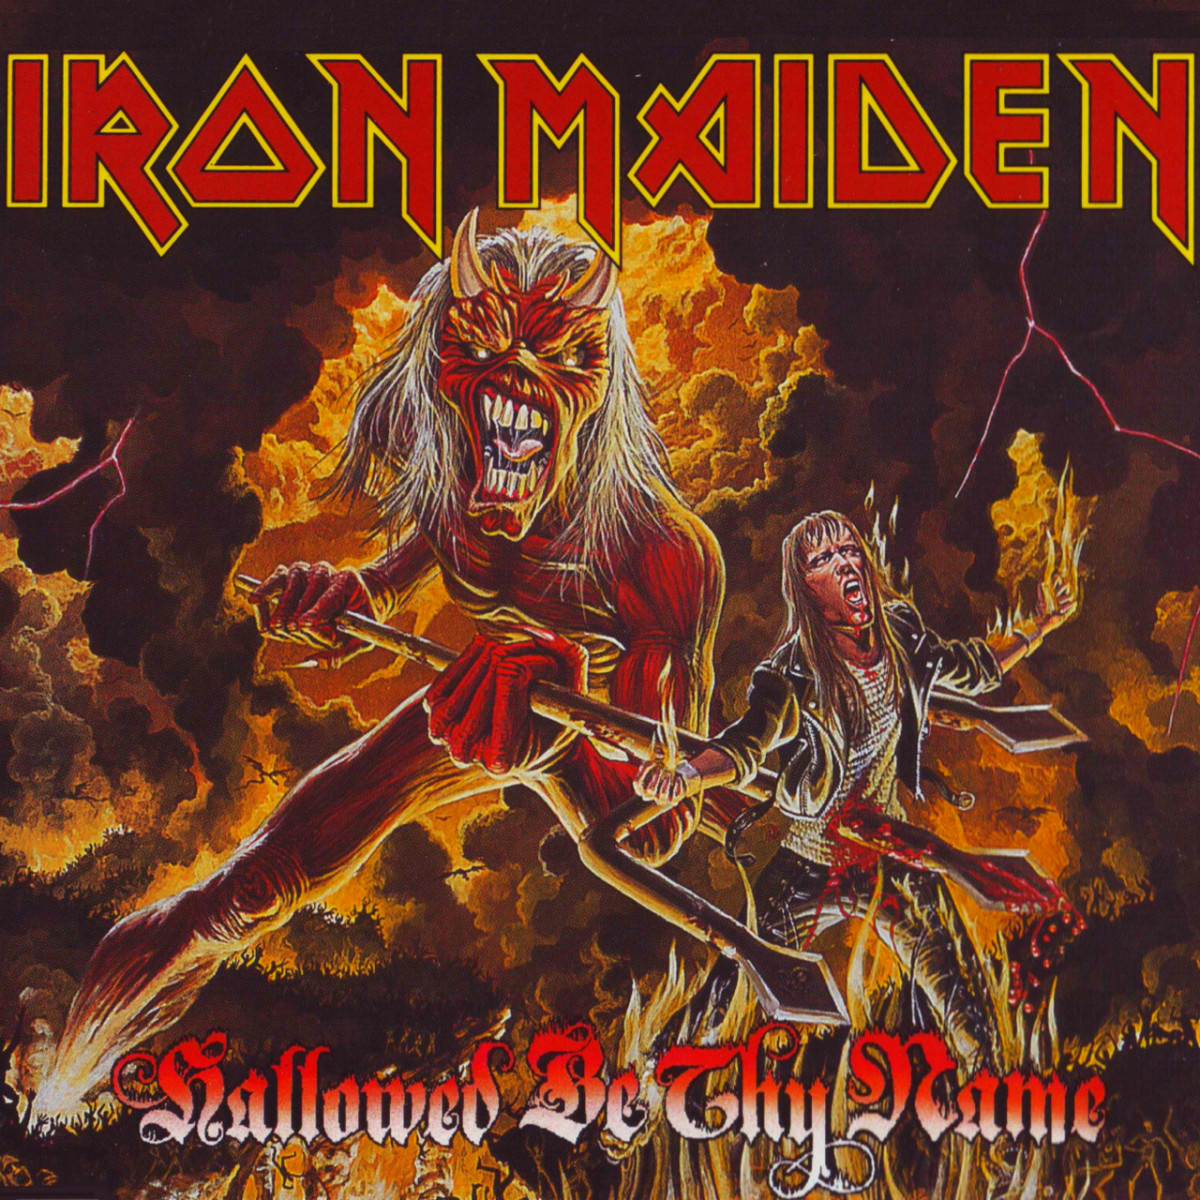 "Iron Maiden ""Hallowed Be Thy Name"" Live EMI EMP 288 7"" Vinyl Single UK Pressing (1993)"